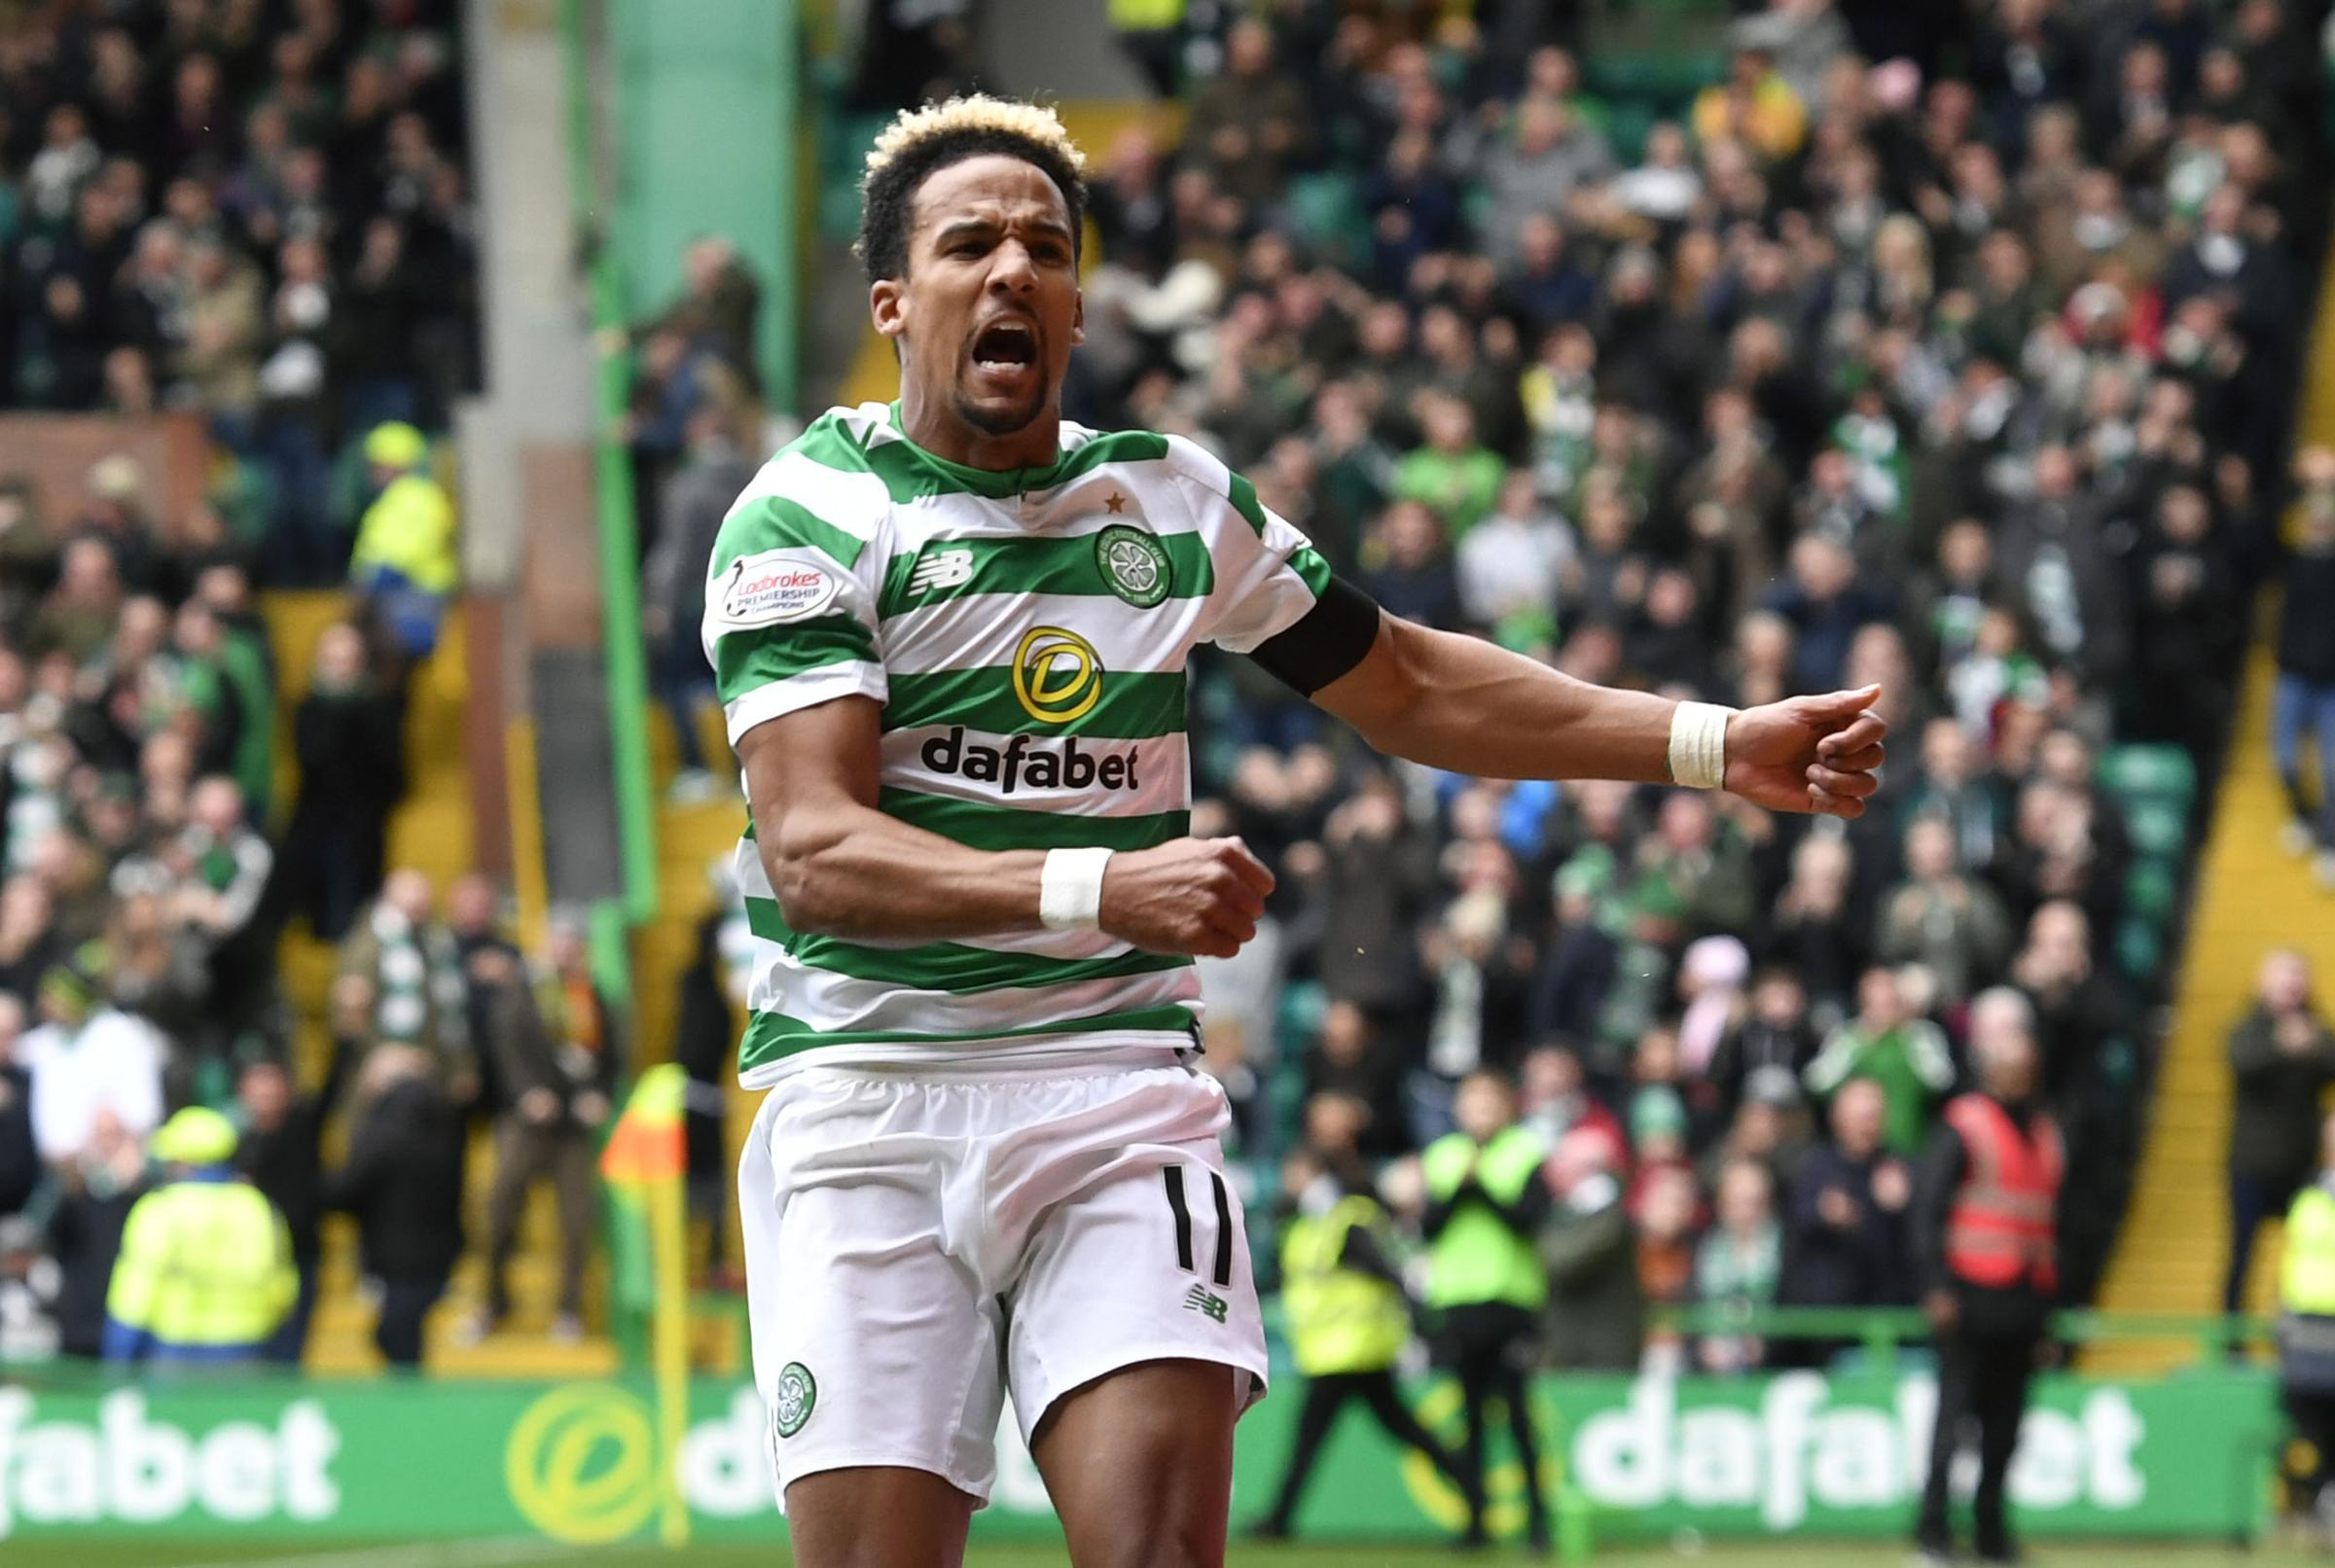 Scott Sinclair hit out at 'ignorance' of fan who racially abused him (Photo: SNS Group)